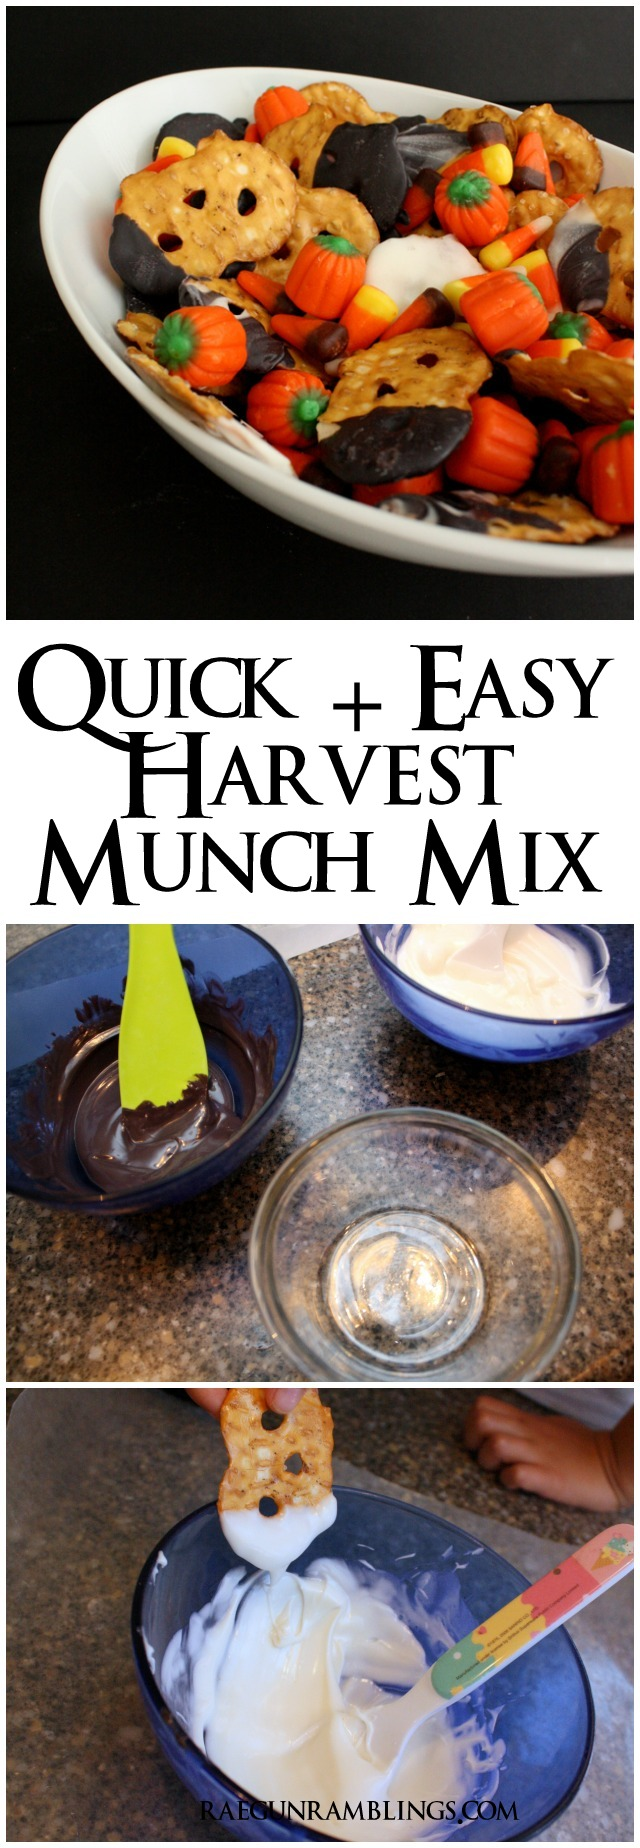 Quick and easy snack mix for fall, Halloween or Thanksgiving - Rae Gun Ramblings